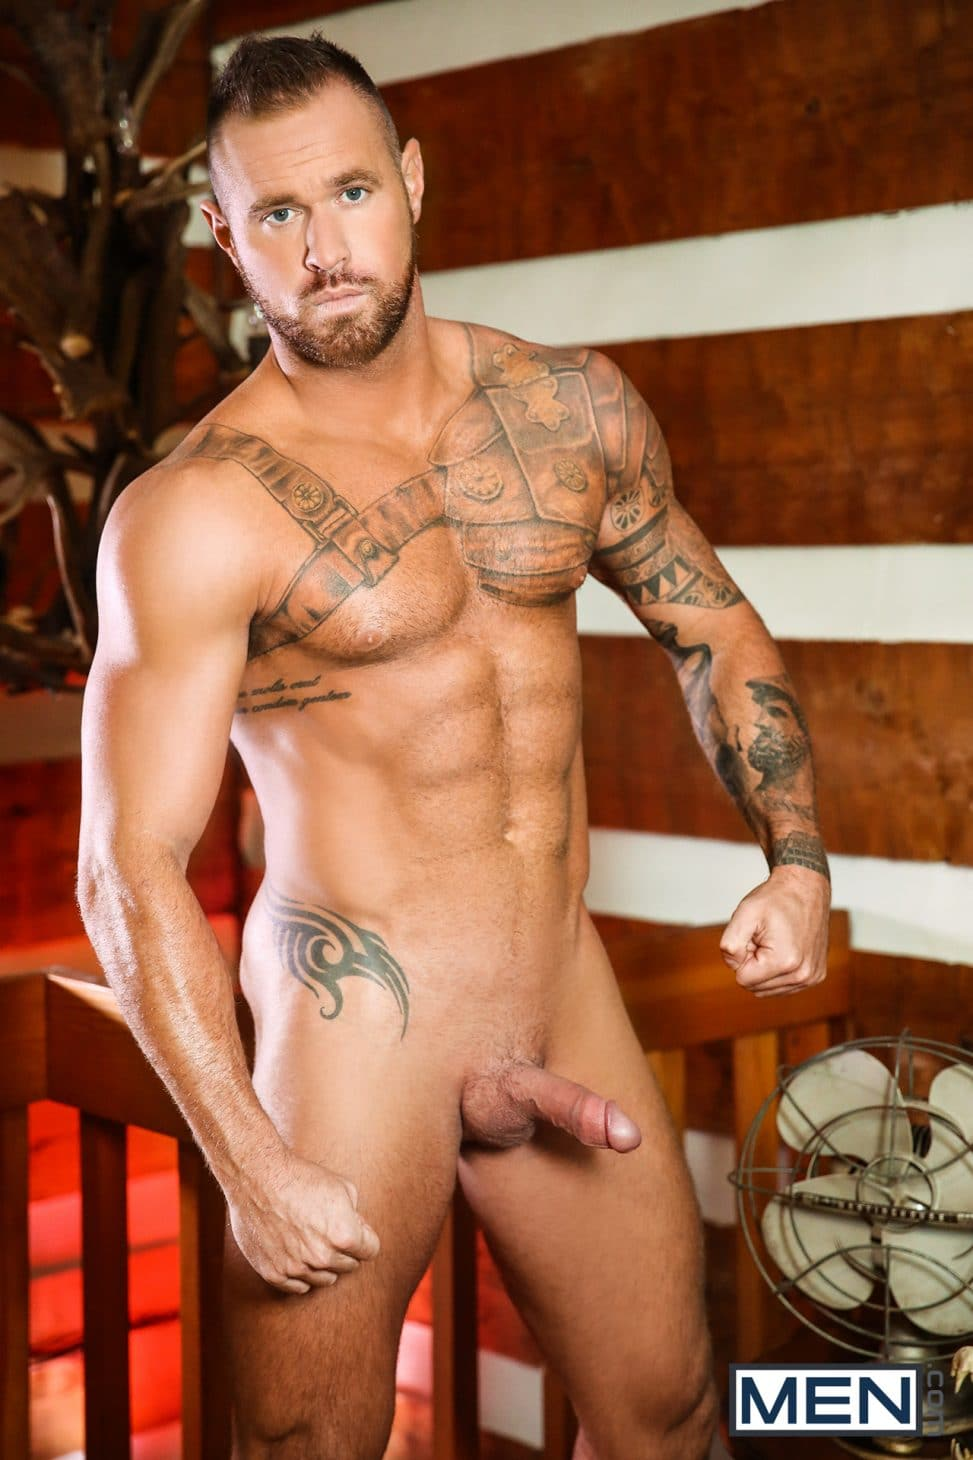 Tattooed Nude Man